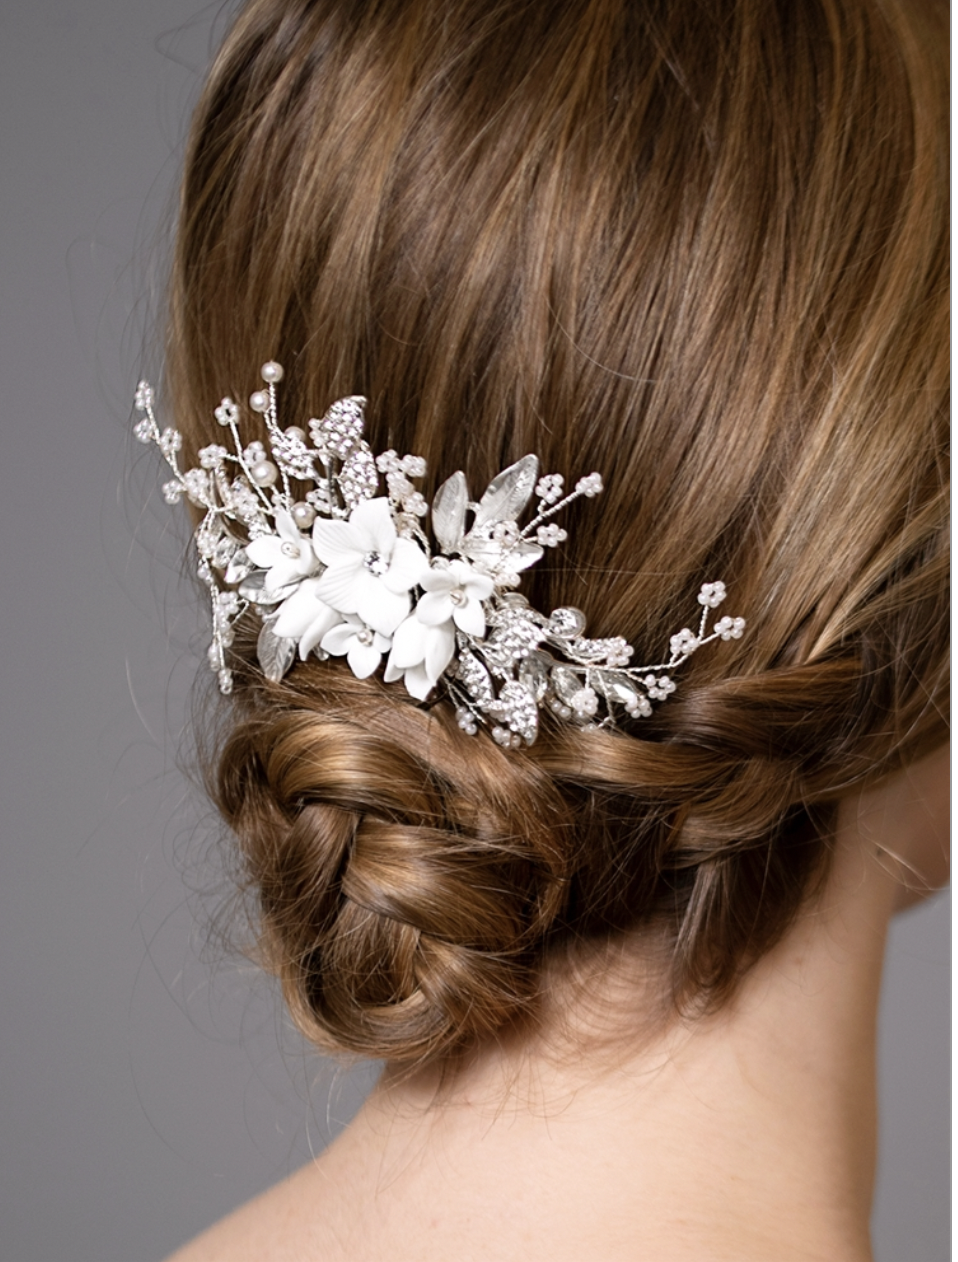 White Resin Flowers, Crystals and Dainty Pearl Sprays Hair Comb